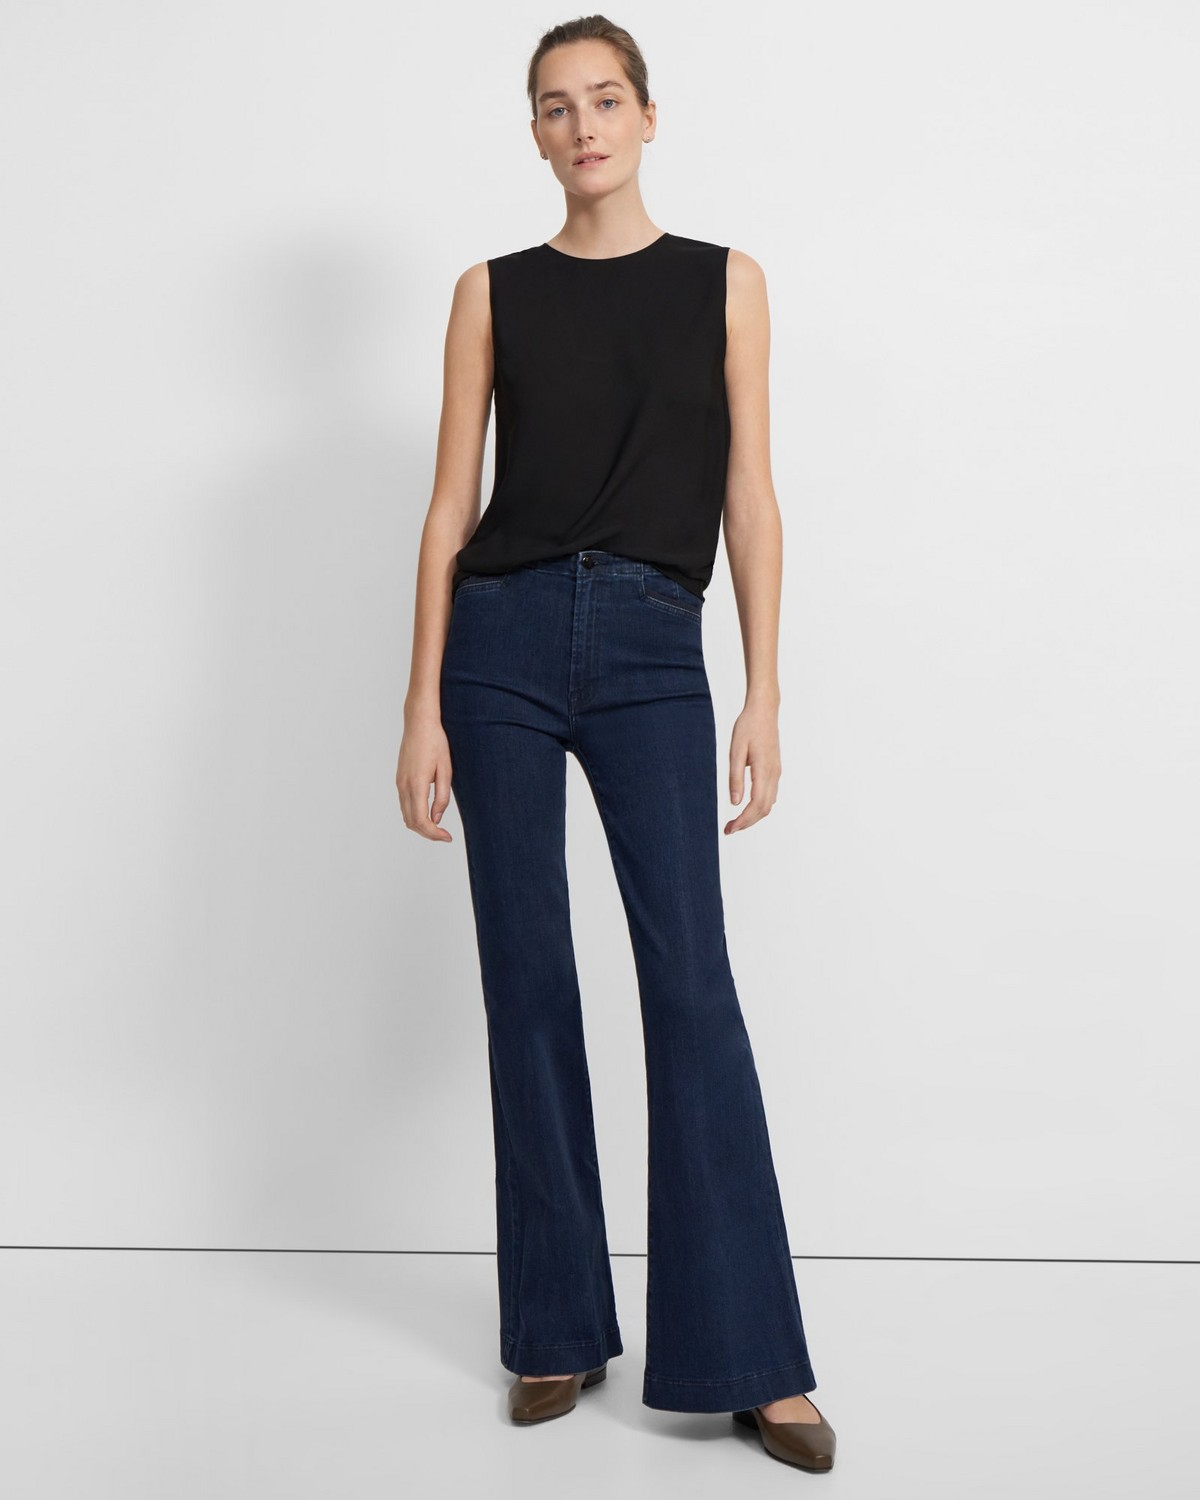 J Brand Darted High-Rise Flared Trouser in Stretch Denim